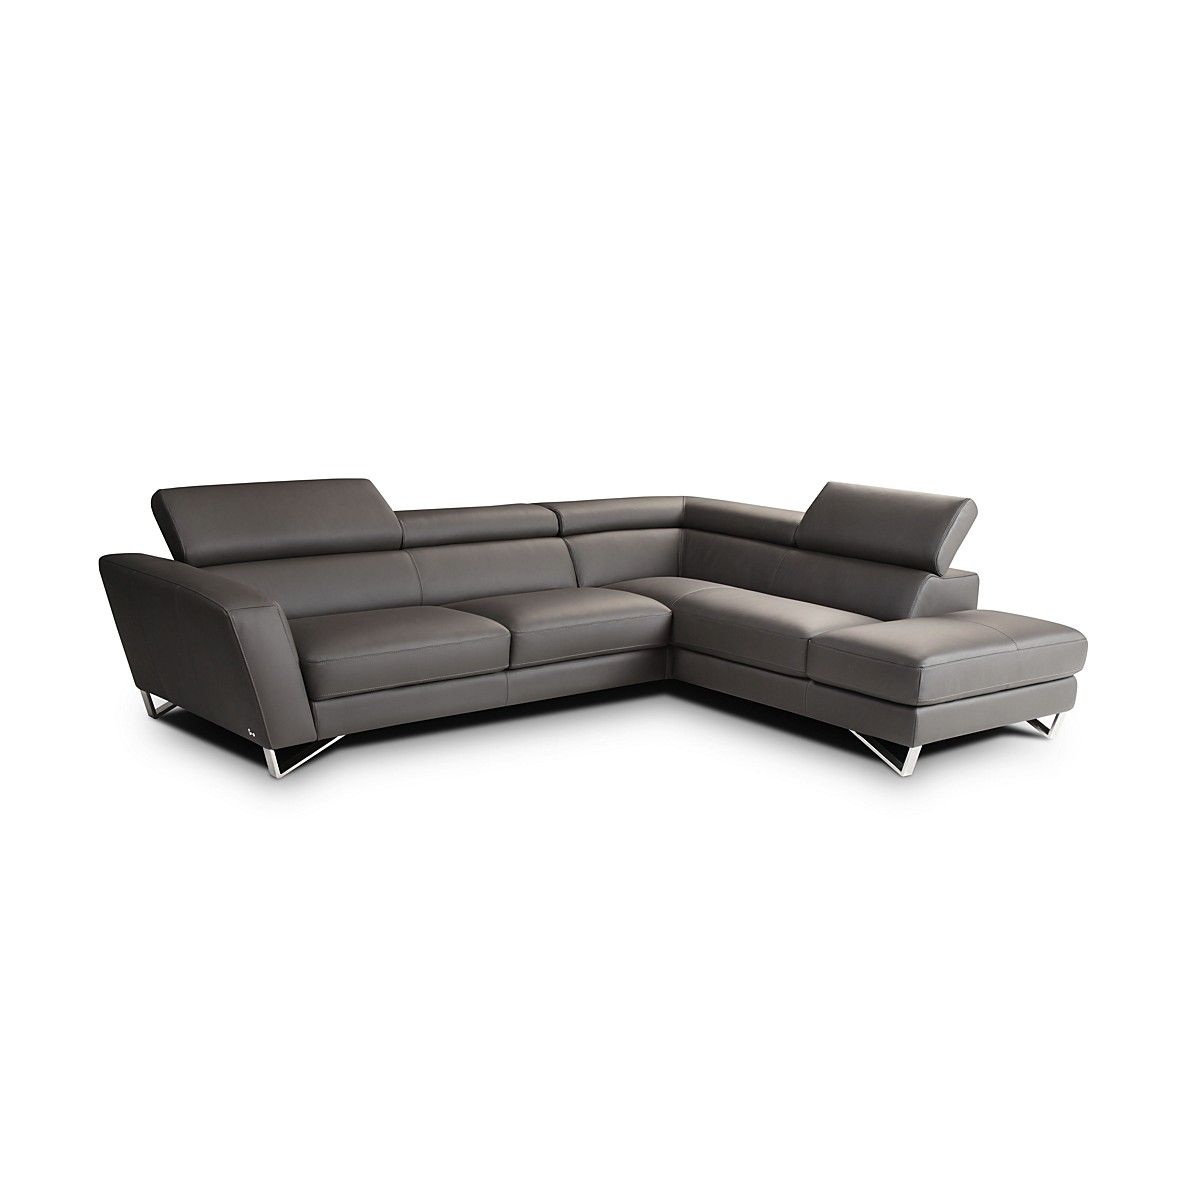 Incroyable Bloomingdaleu0027s Delancey Sectional   Home   Bloomingdaleu0027s